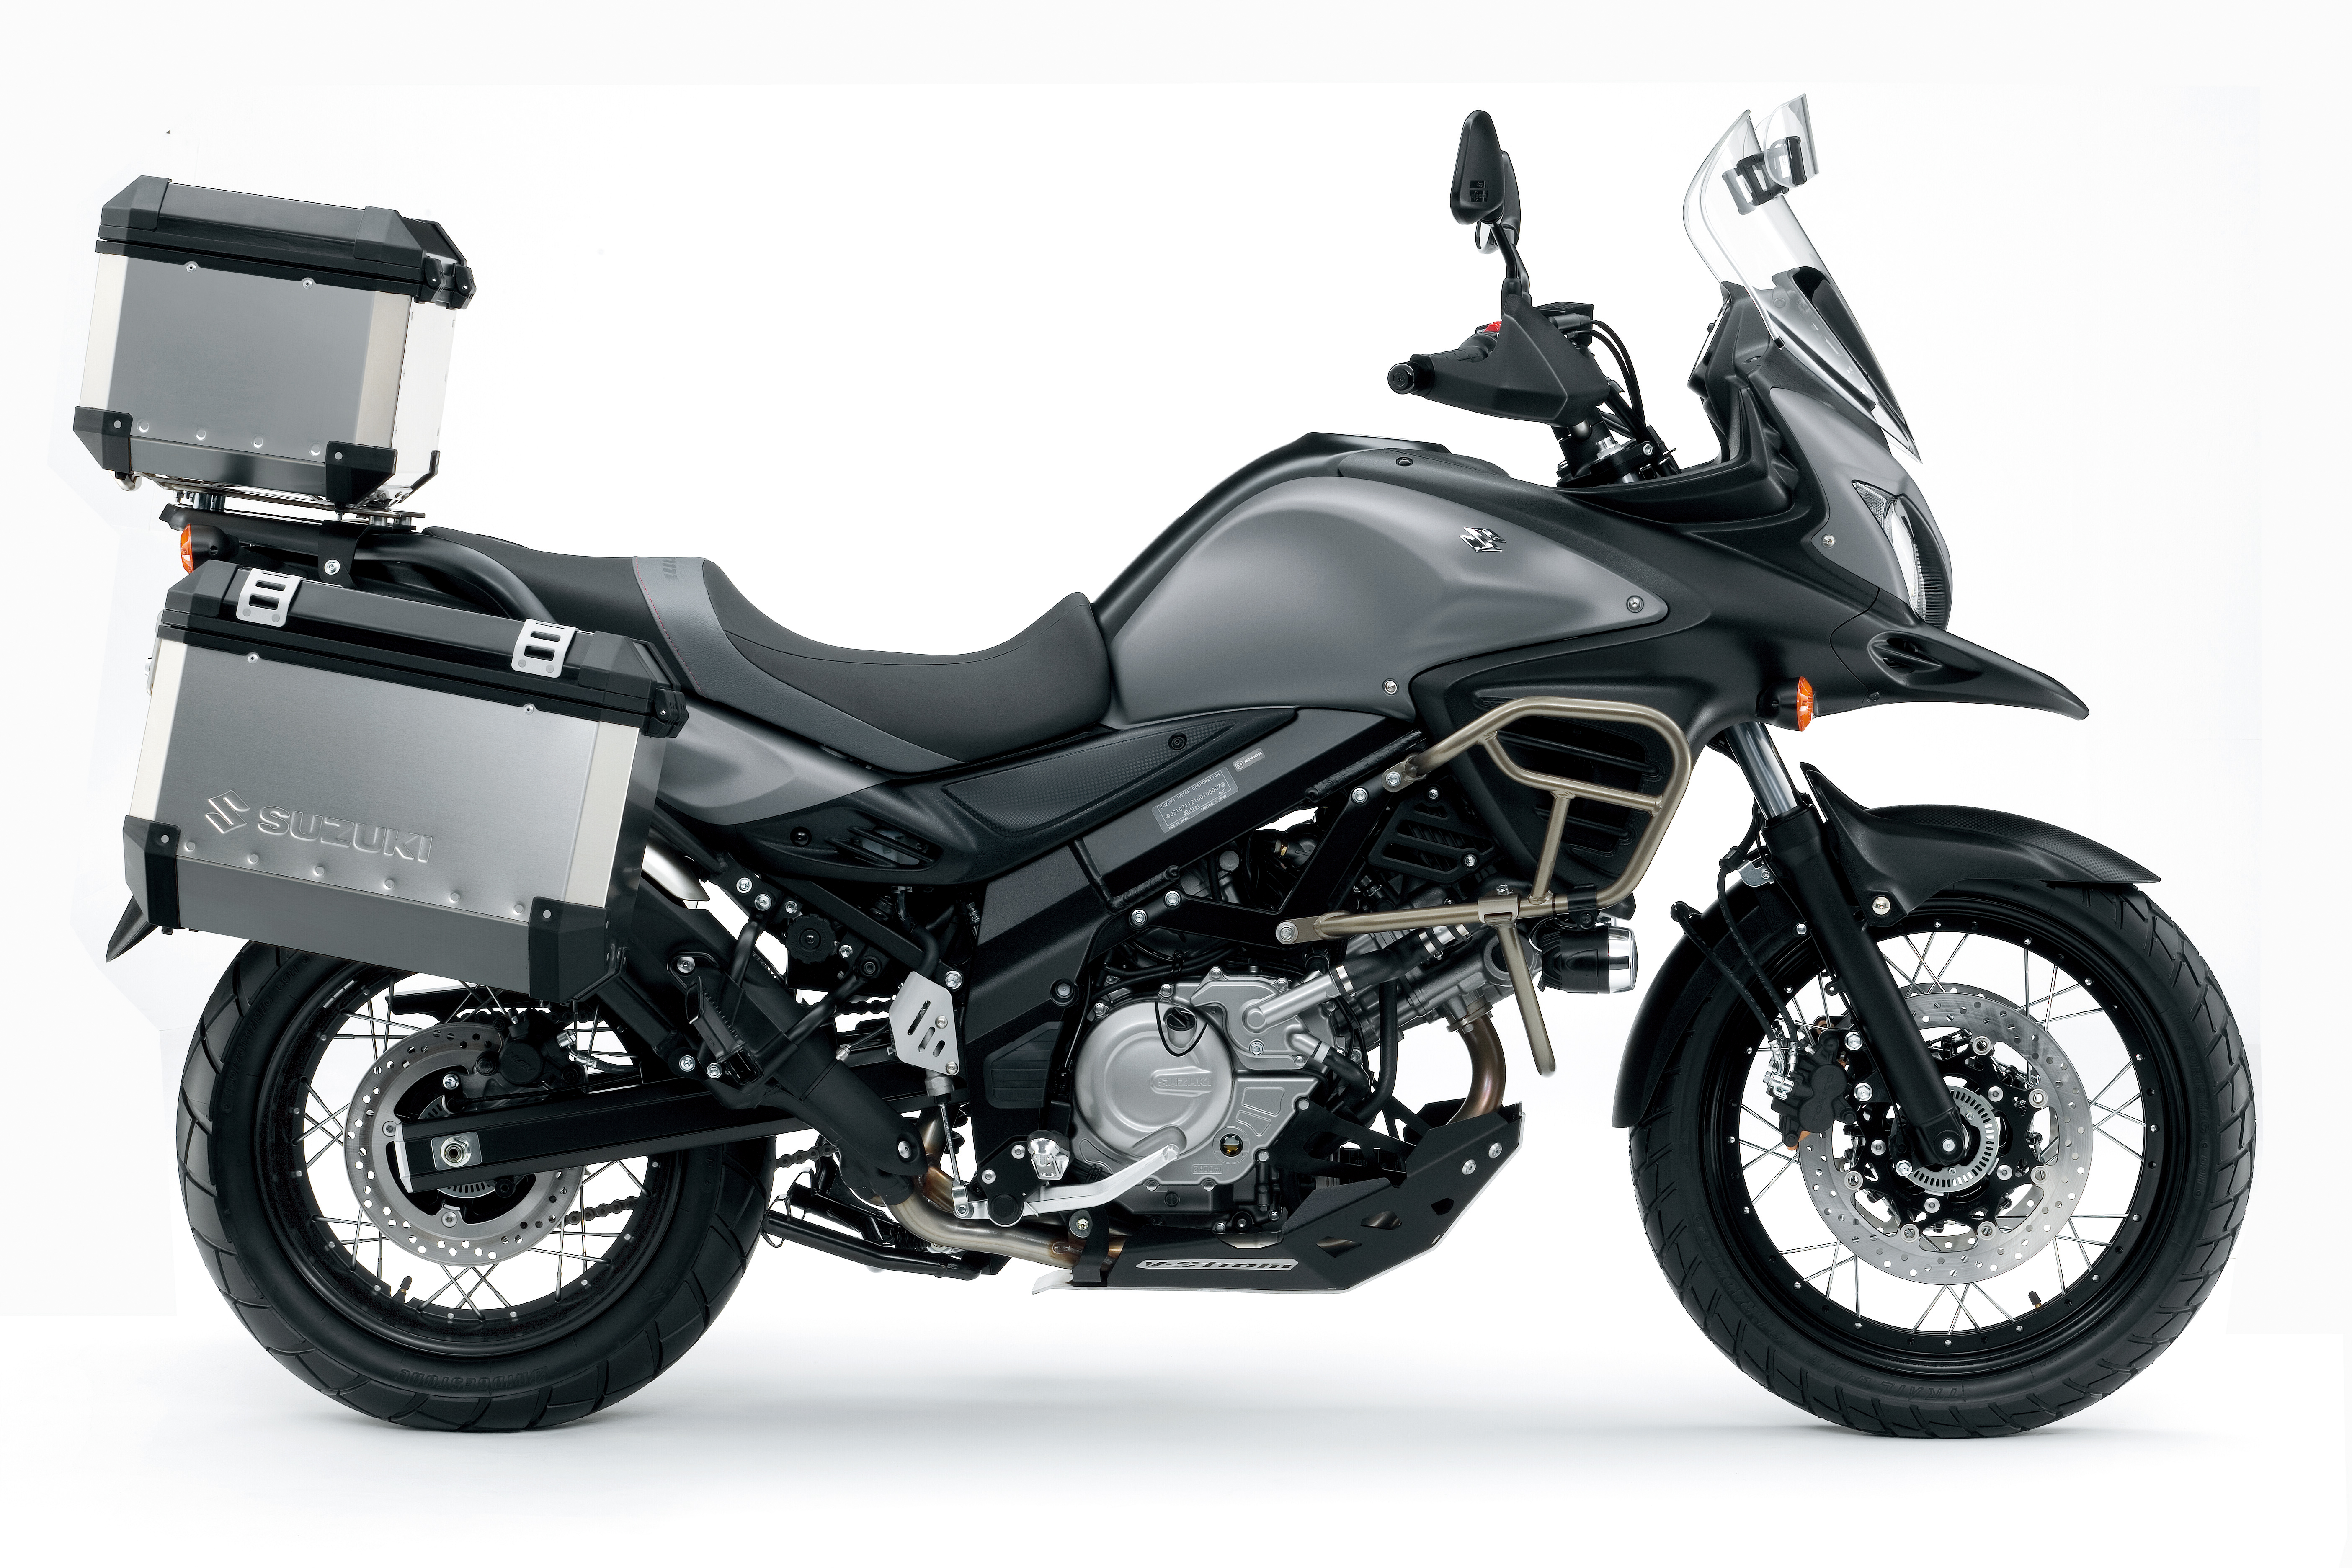 Intermot 2014: new Suzuki V-Strom 650XT ABS unveiled